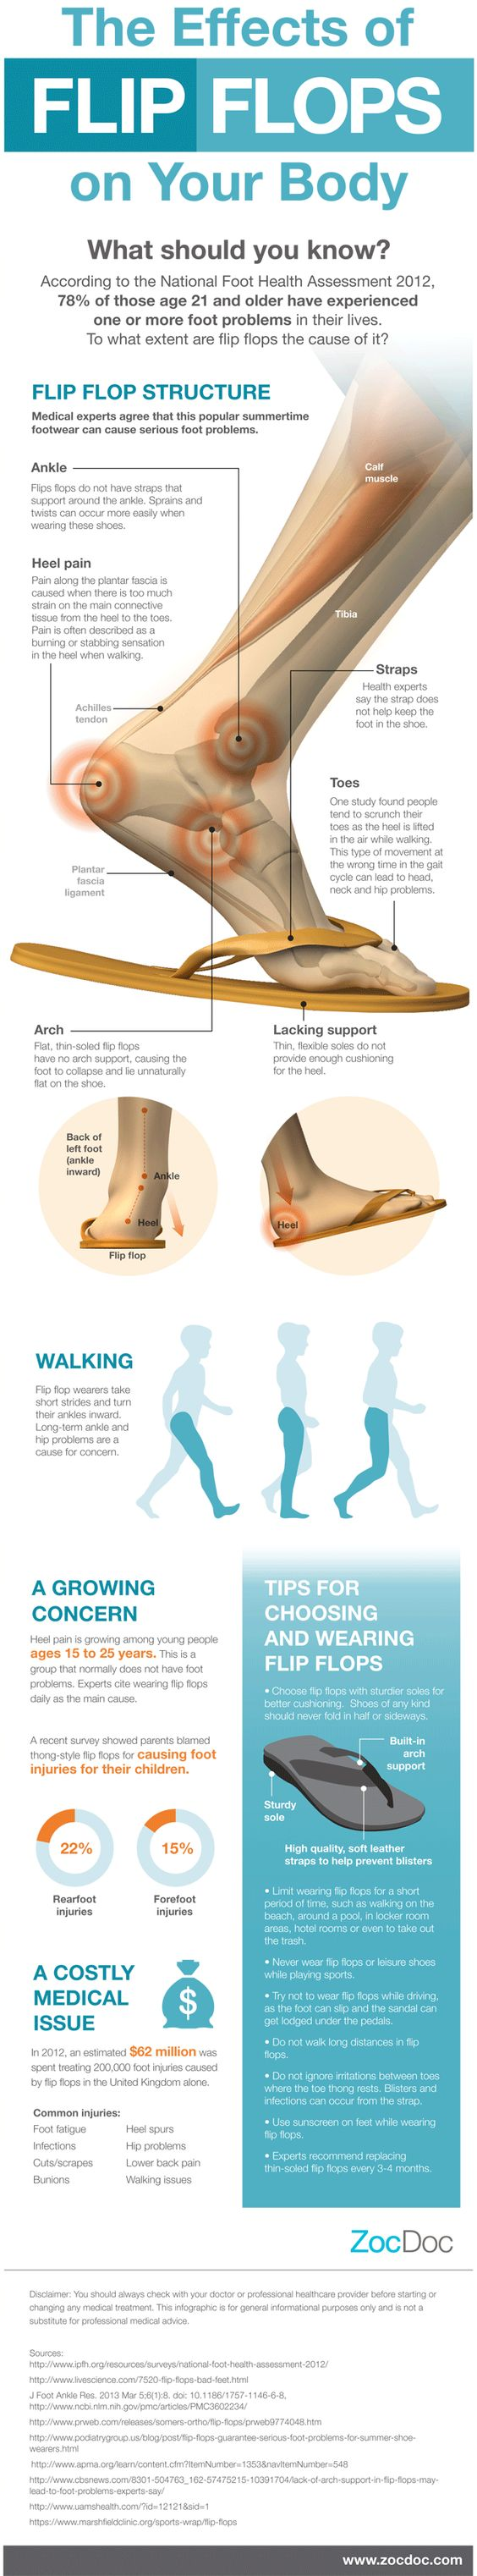 Your body on flip flops: What your favorite sandals are really doing to your feet - NY Daily News